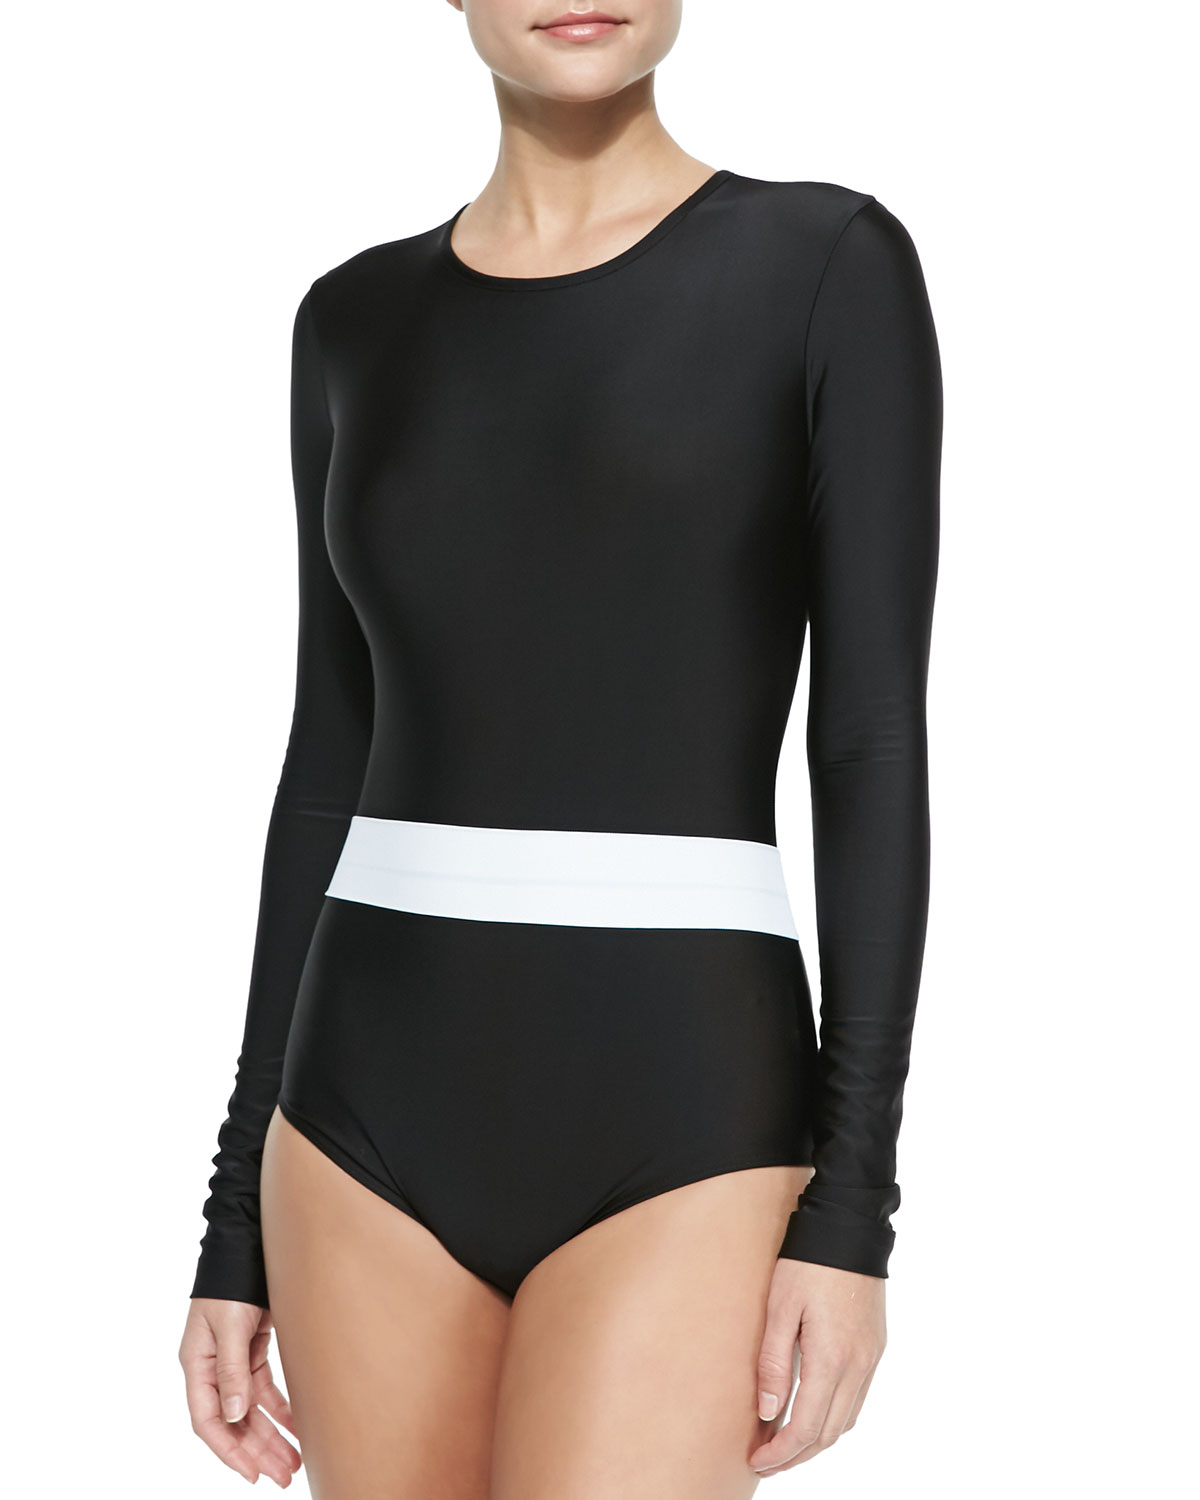 Cover Long-Sleeve One-Piece Swimsuit Black/White